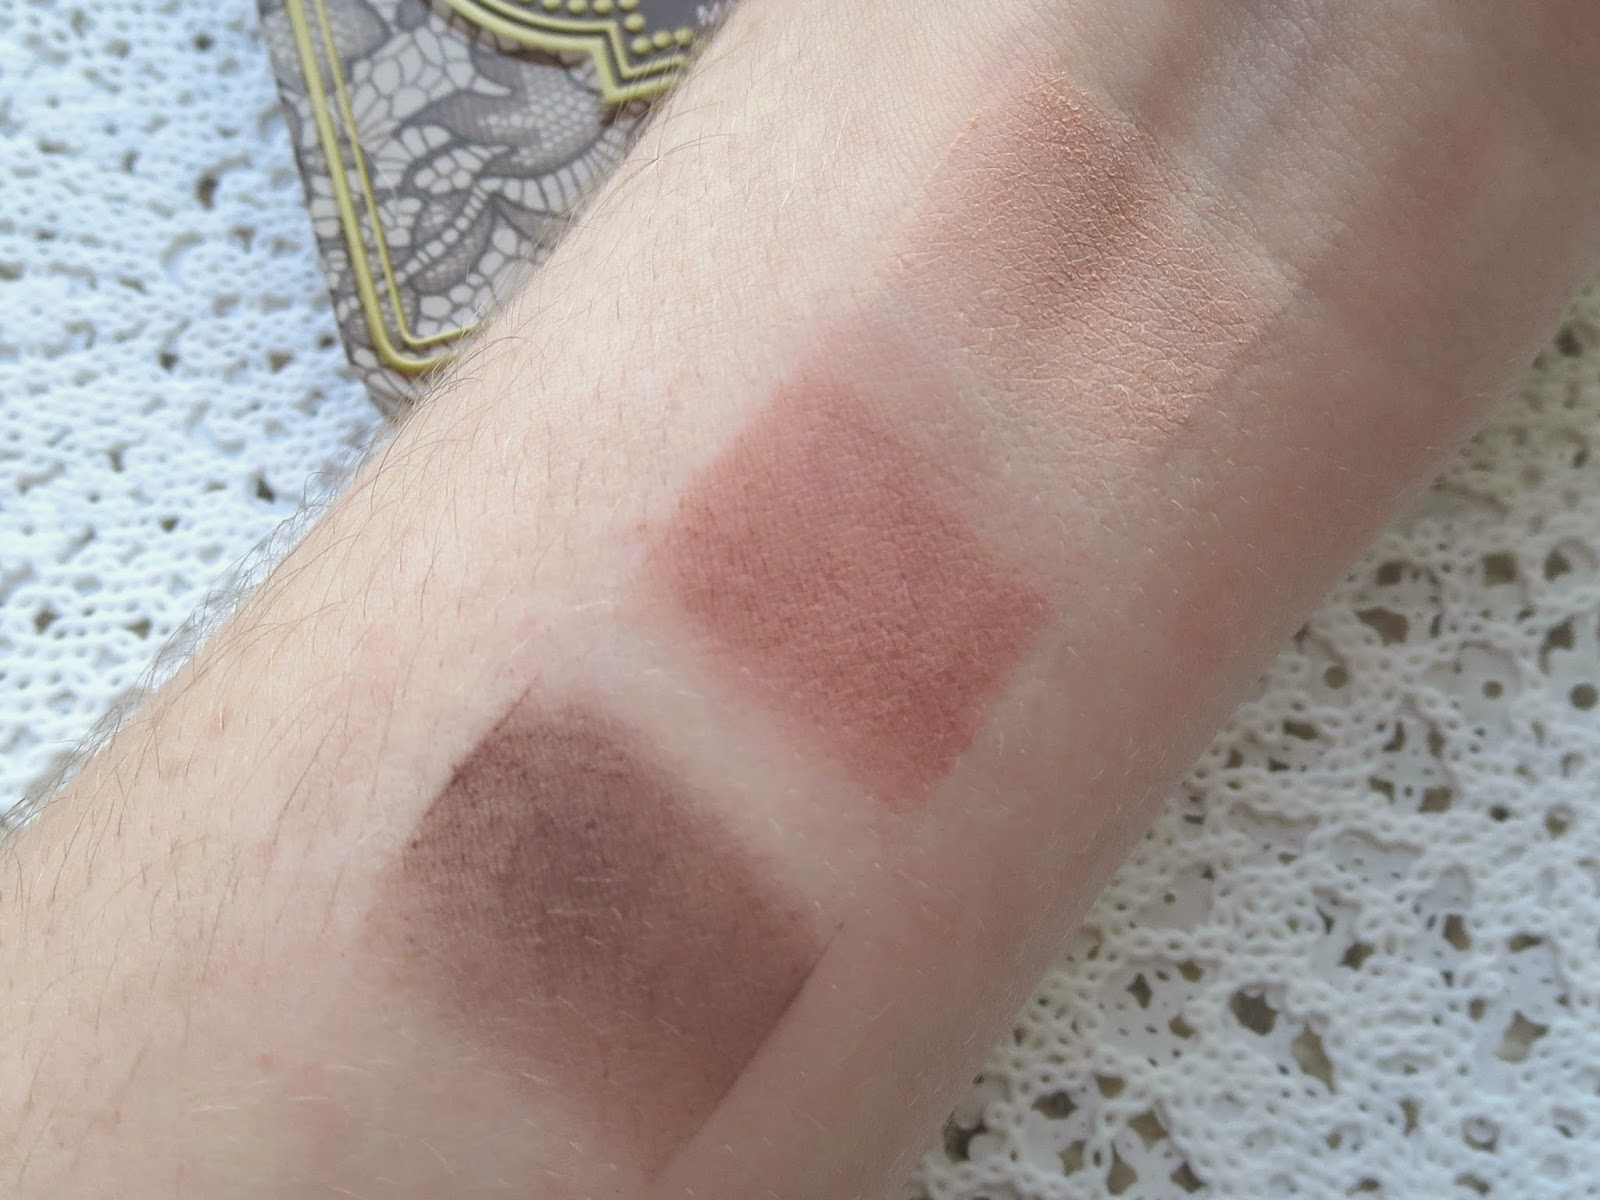 a picture of Too Faced Natural Matte palette swatch ; Risque, Strapless, Lace Teddy